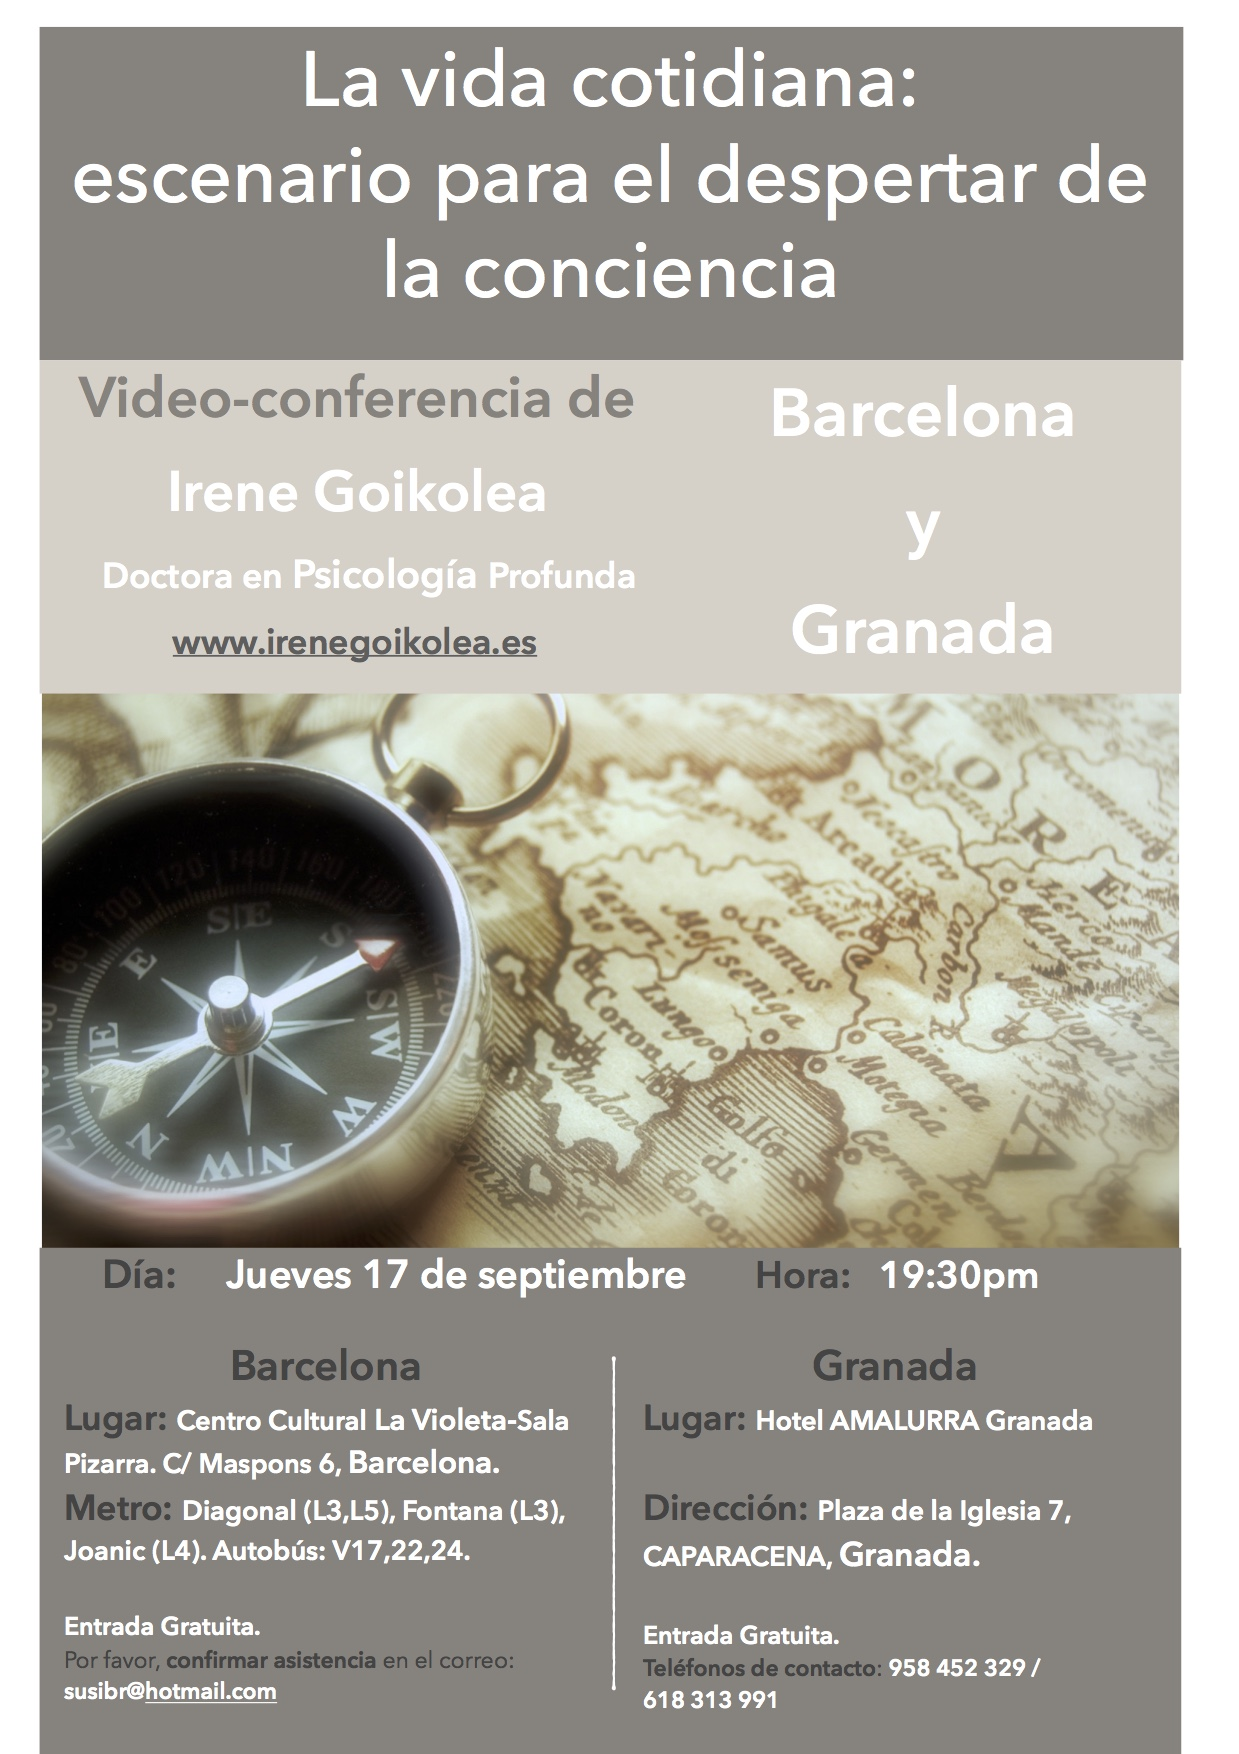 Cartel de la video-conferencia